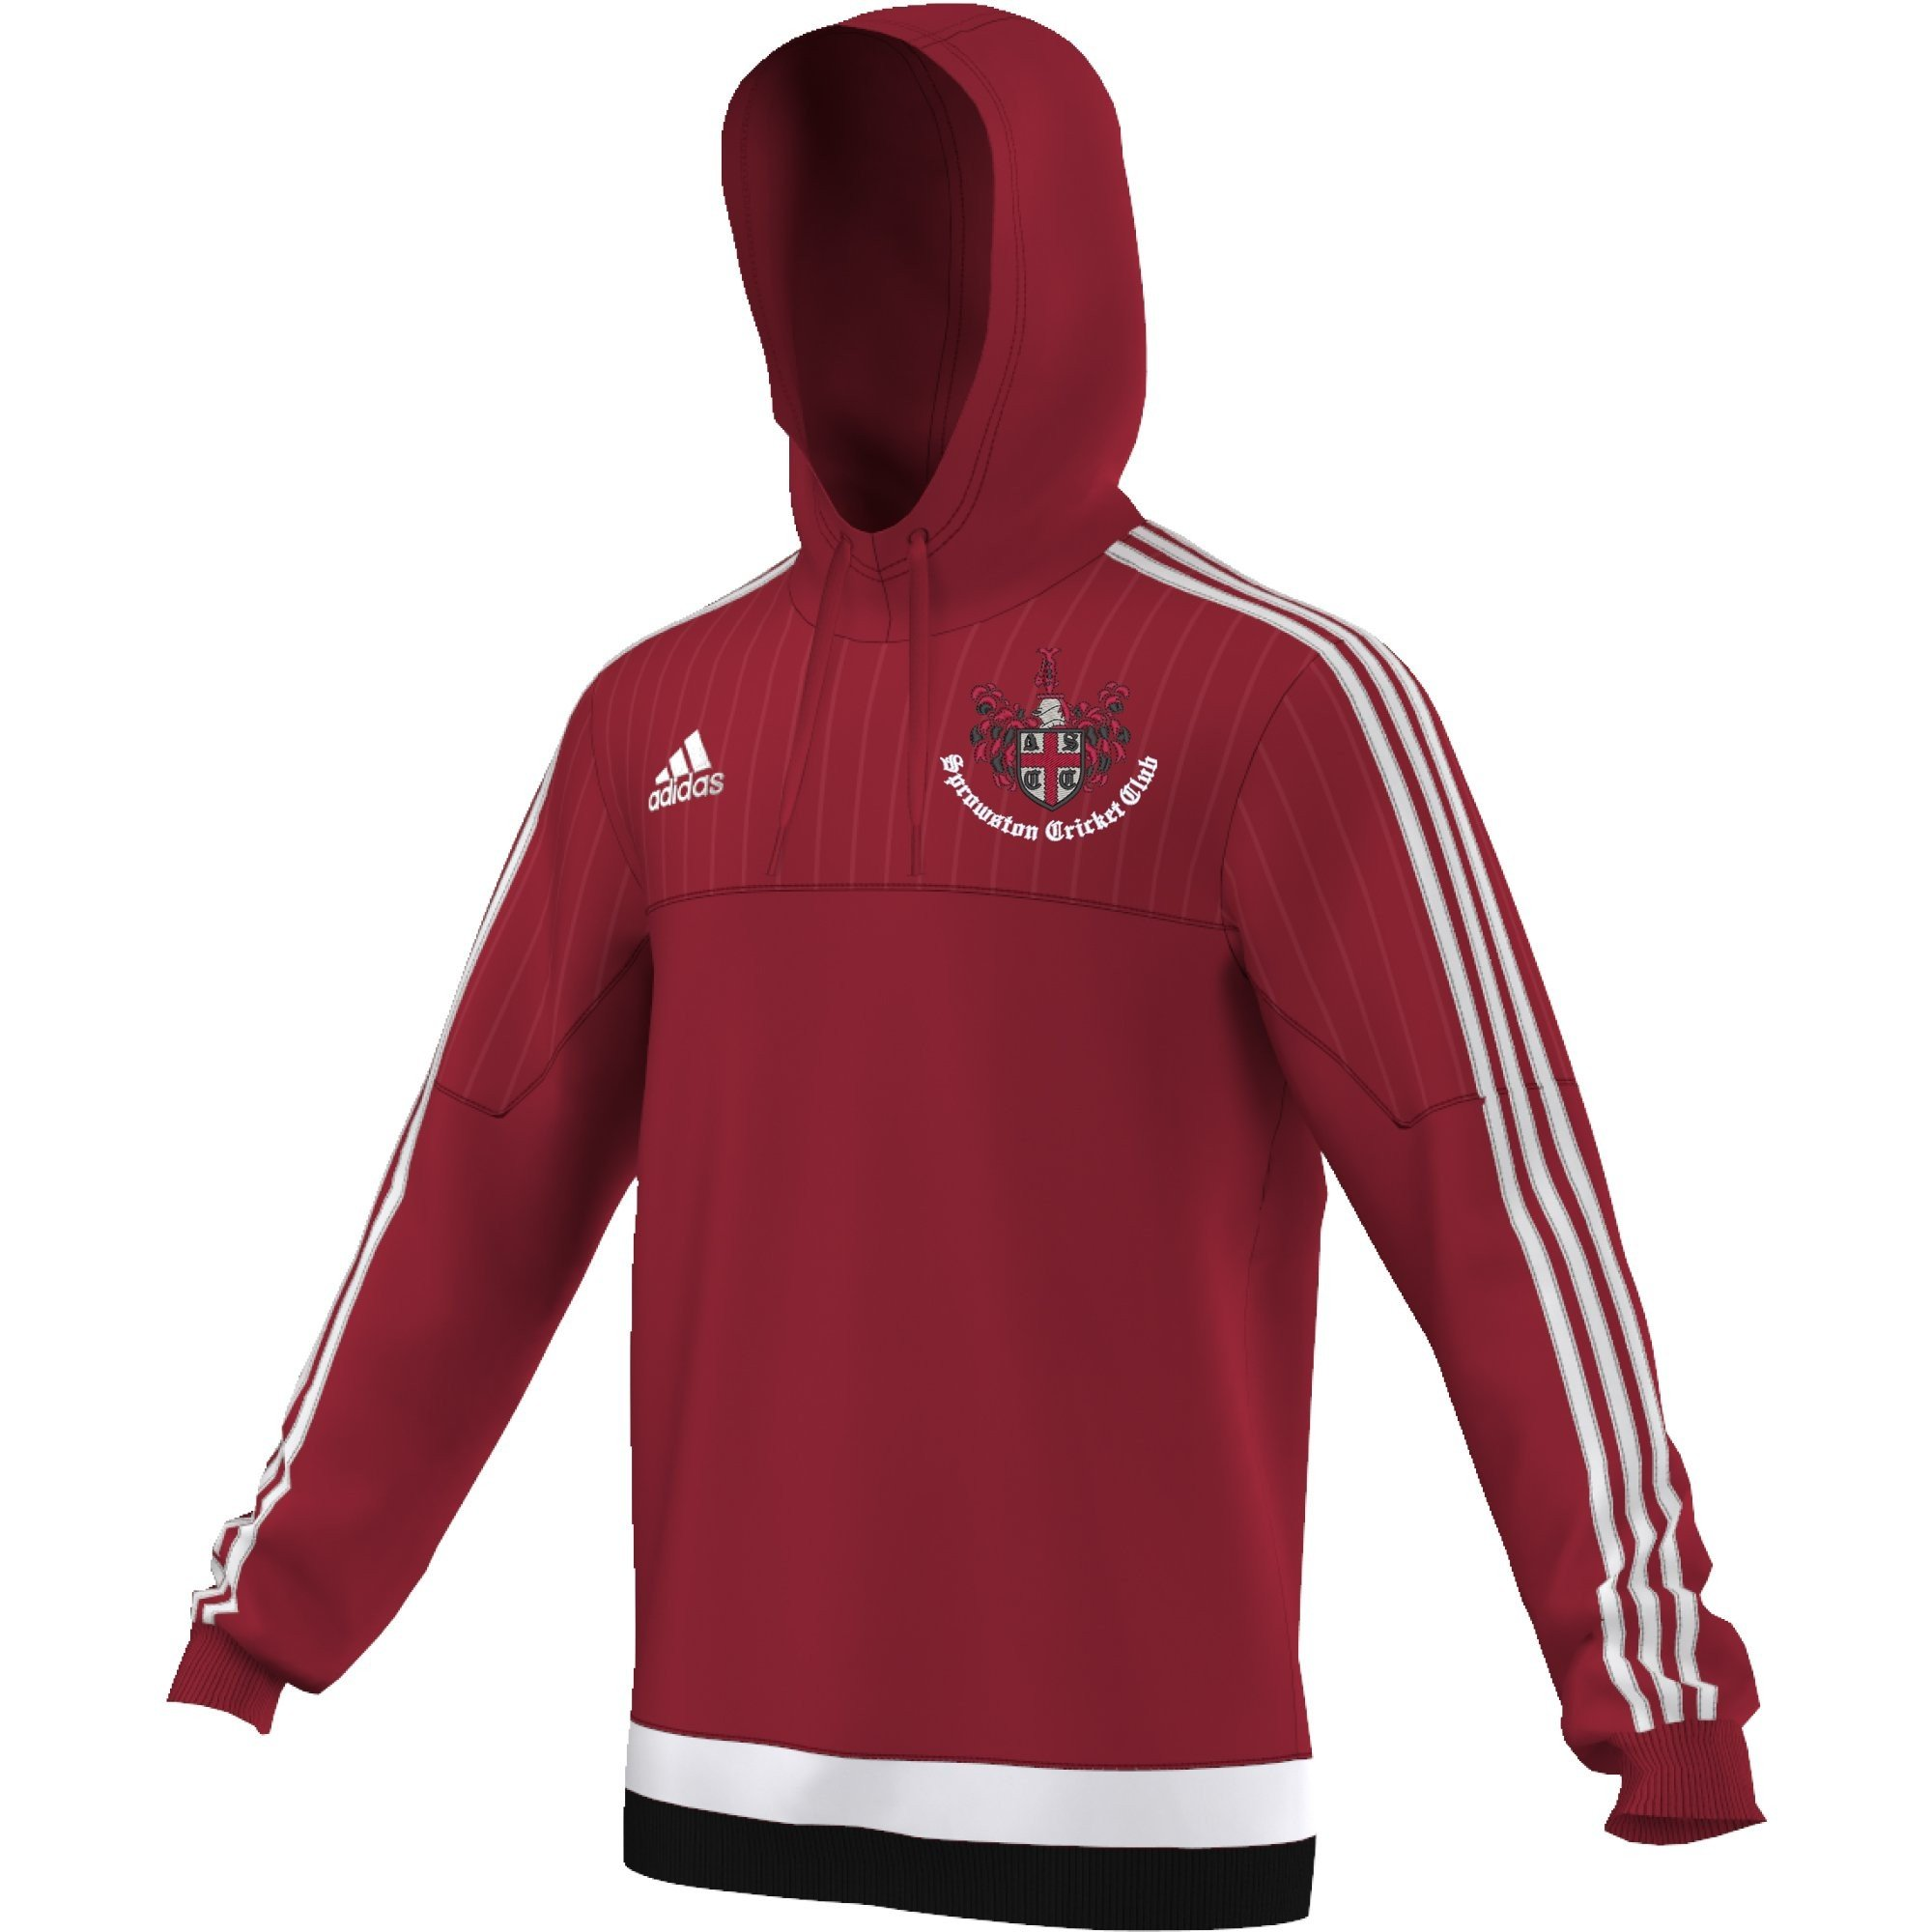 Sprowston CC Adidas Red Hoody